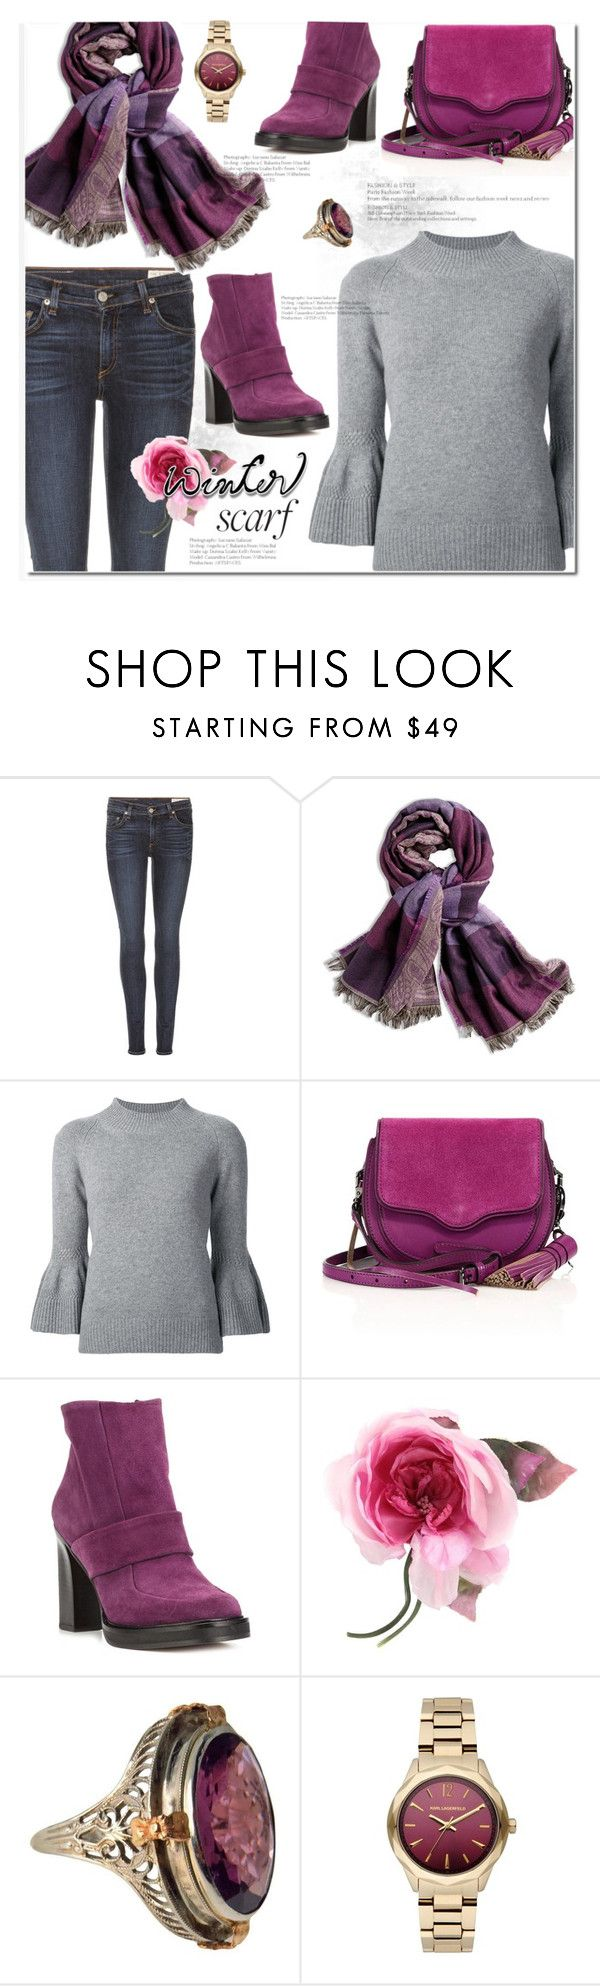 """""""Winter Scarf Style"""" by huda-alalawi ❤ liked on Polyvore featuring rag & bone, Chico's, Carolina Herrera, Rebecca Minkoff, Carven, Gucci, Karl Lagerfeld and scarf"""